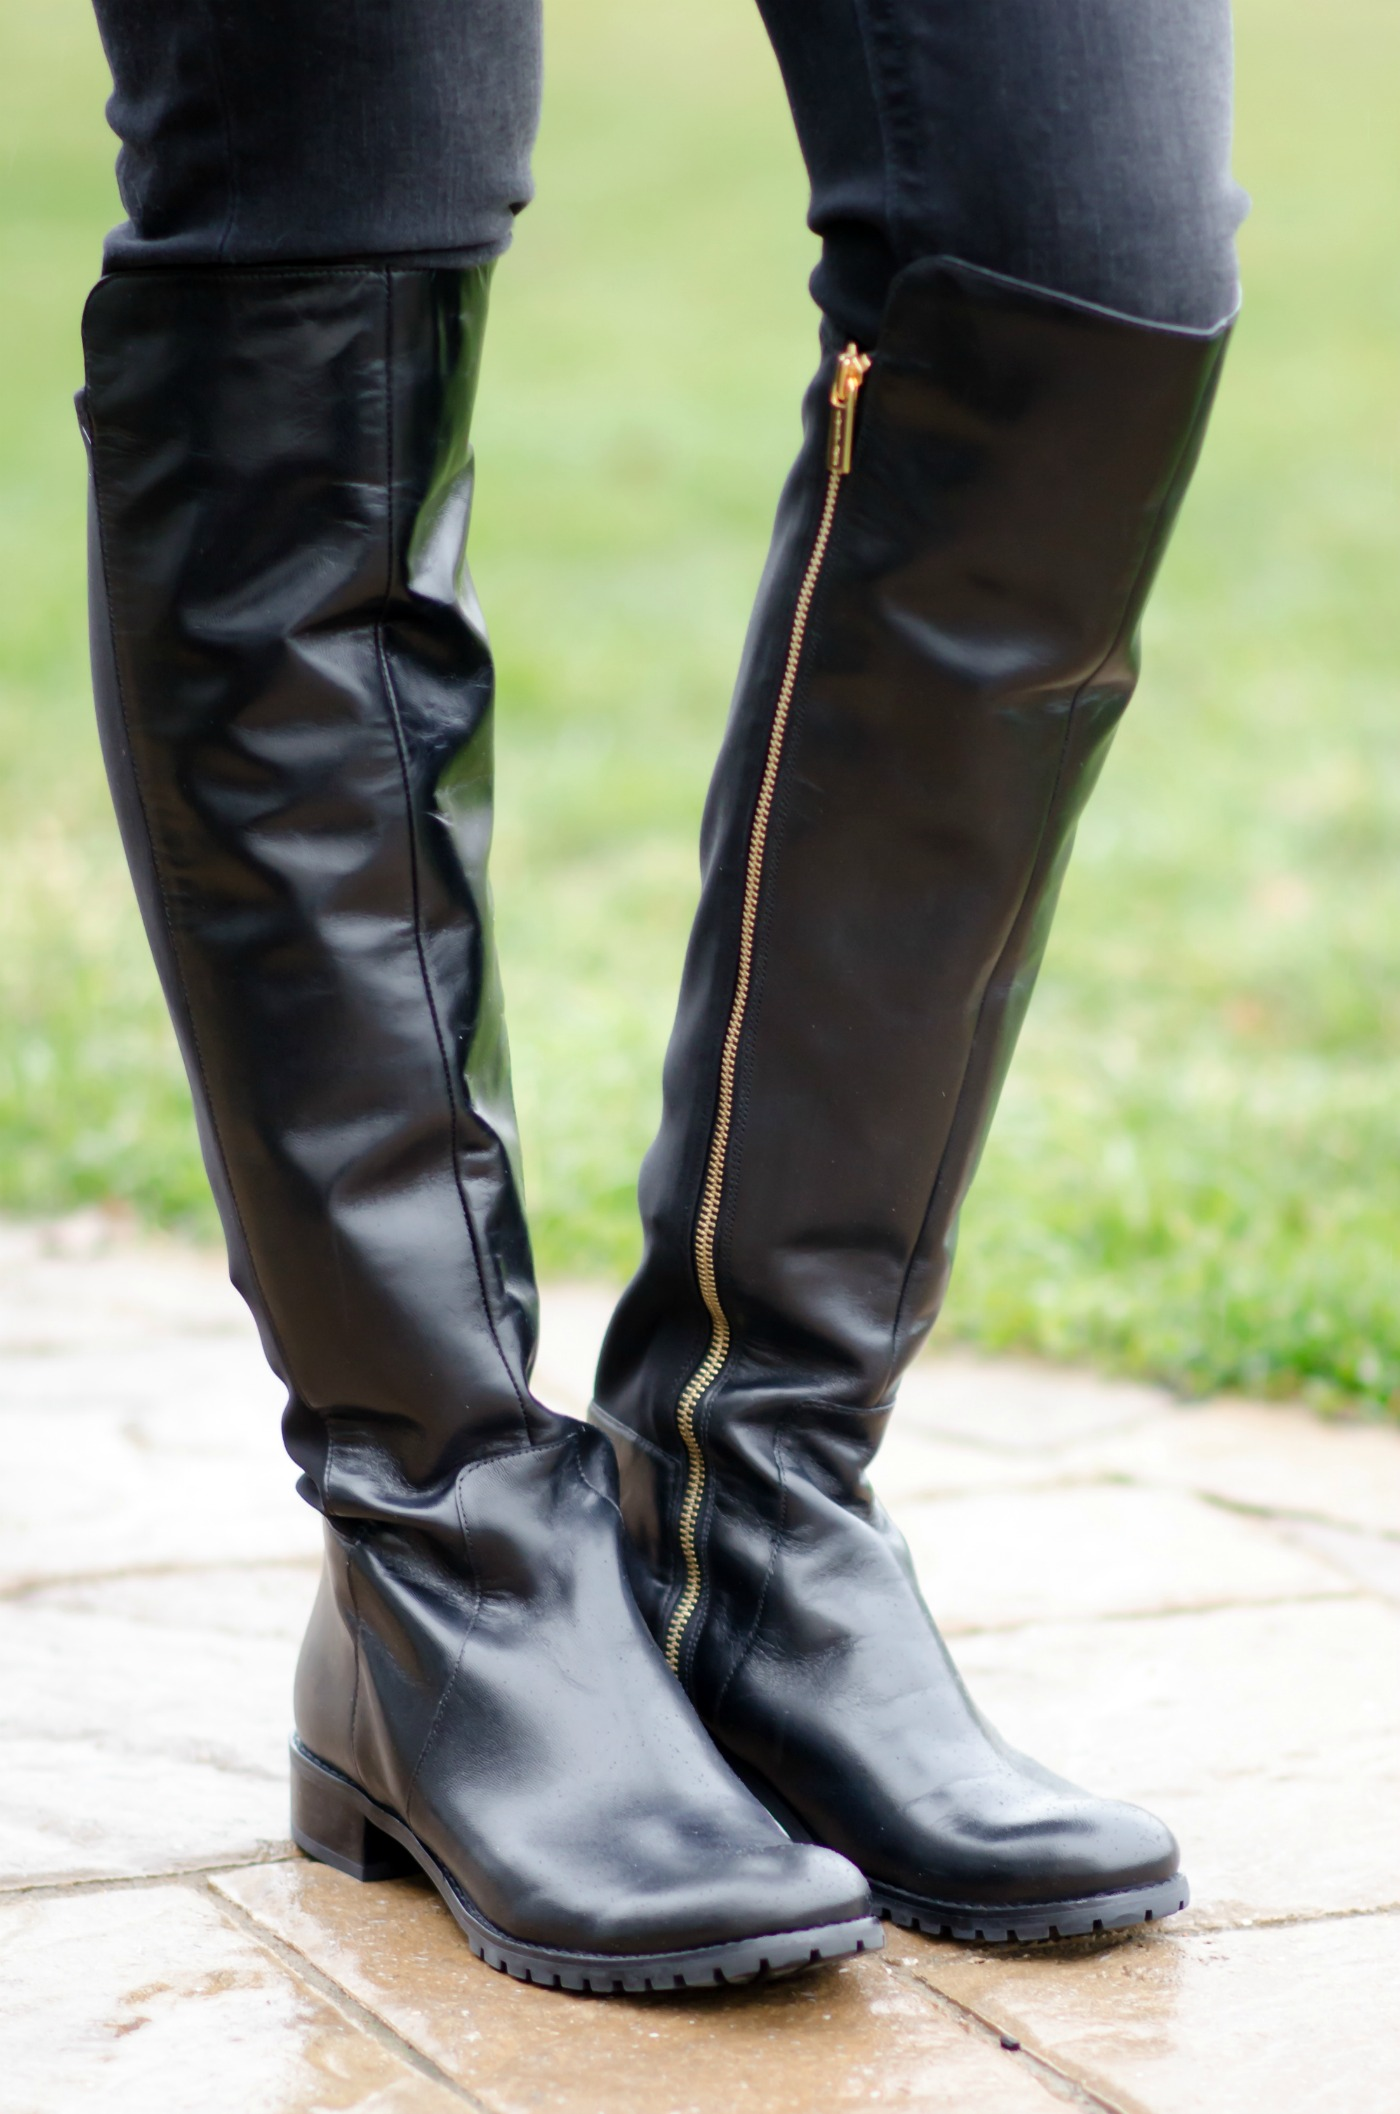 Product - Gaby14s by Bamboo, Black Suede OTK Over Knee Thigh High Pull-On Slouch Suede Boots w Threaded Lug Sole. Product Image. Price $ Product Title. Product - DYMADE Women's Chunky Heel Tied up Side Zip Suede Knee High Boots. Product Image. Price $ 89 - .